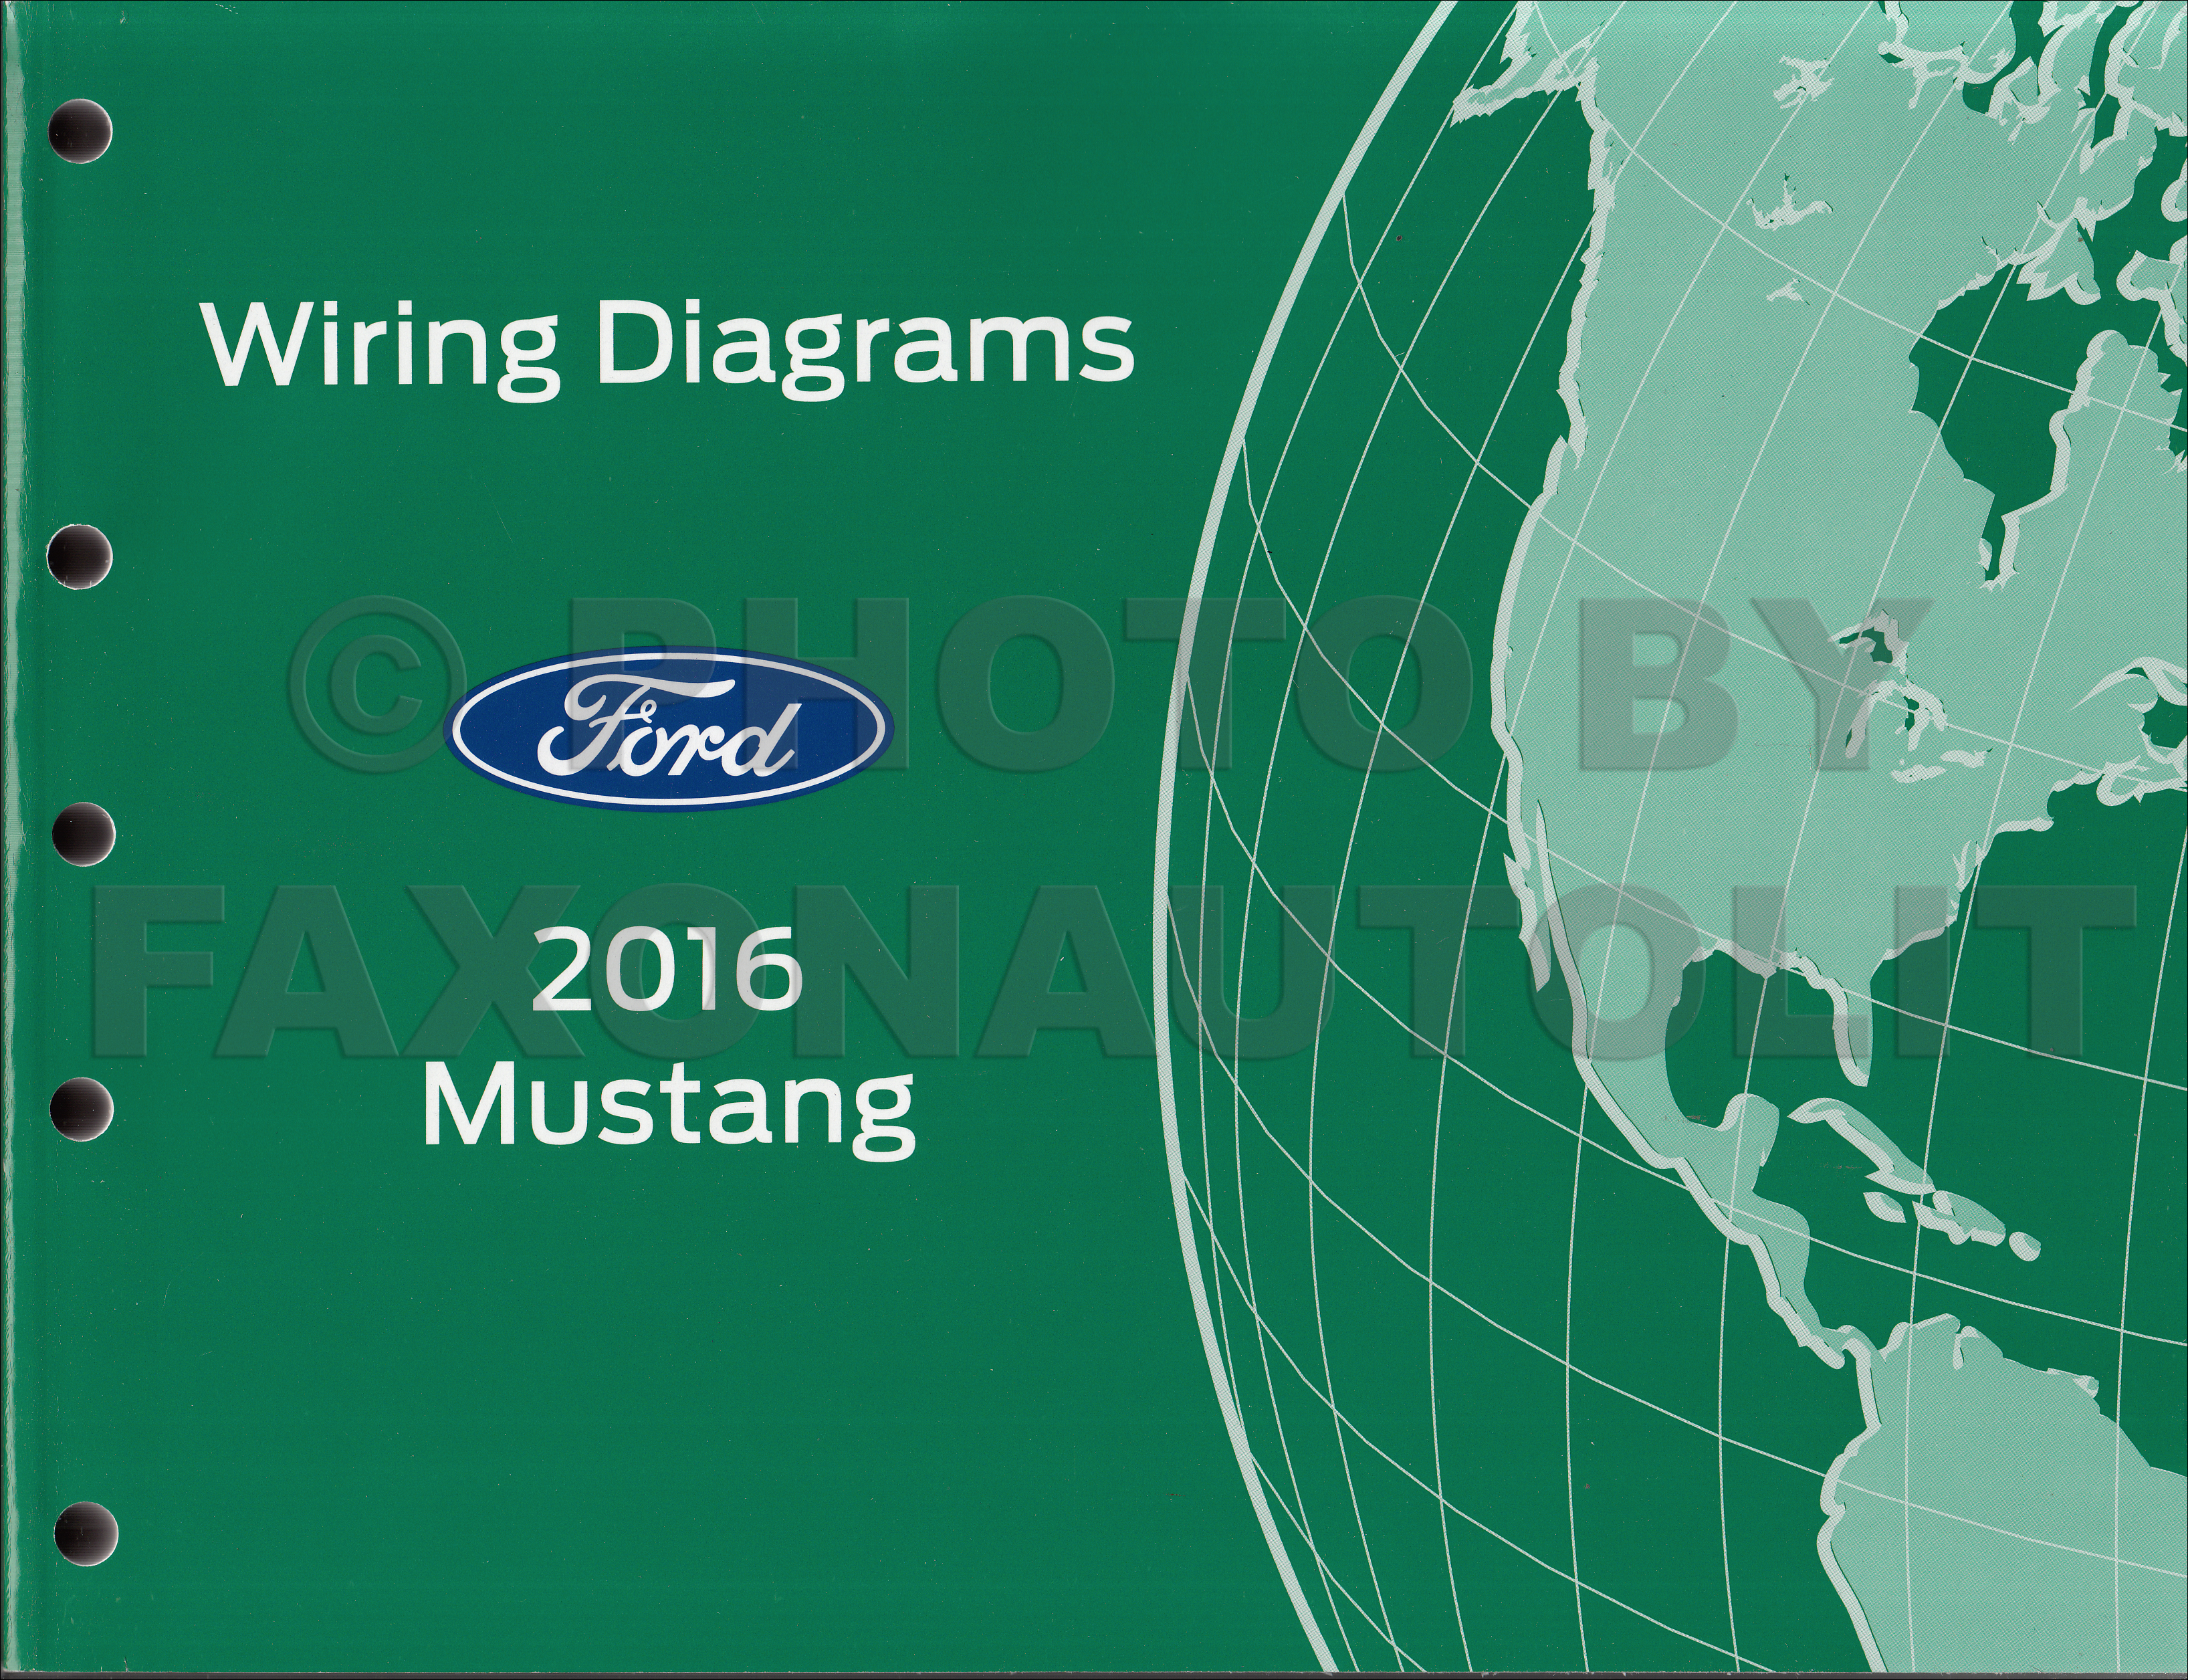 [SCHEMATICS_4HG]  2016 Ford Mustang Wiring Diagram Manual Original | 2016 Mustang Gt Wiring Diagram |  | Faxon Auto Literature